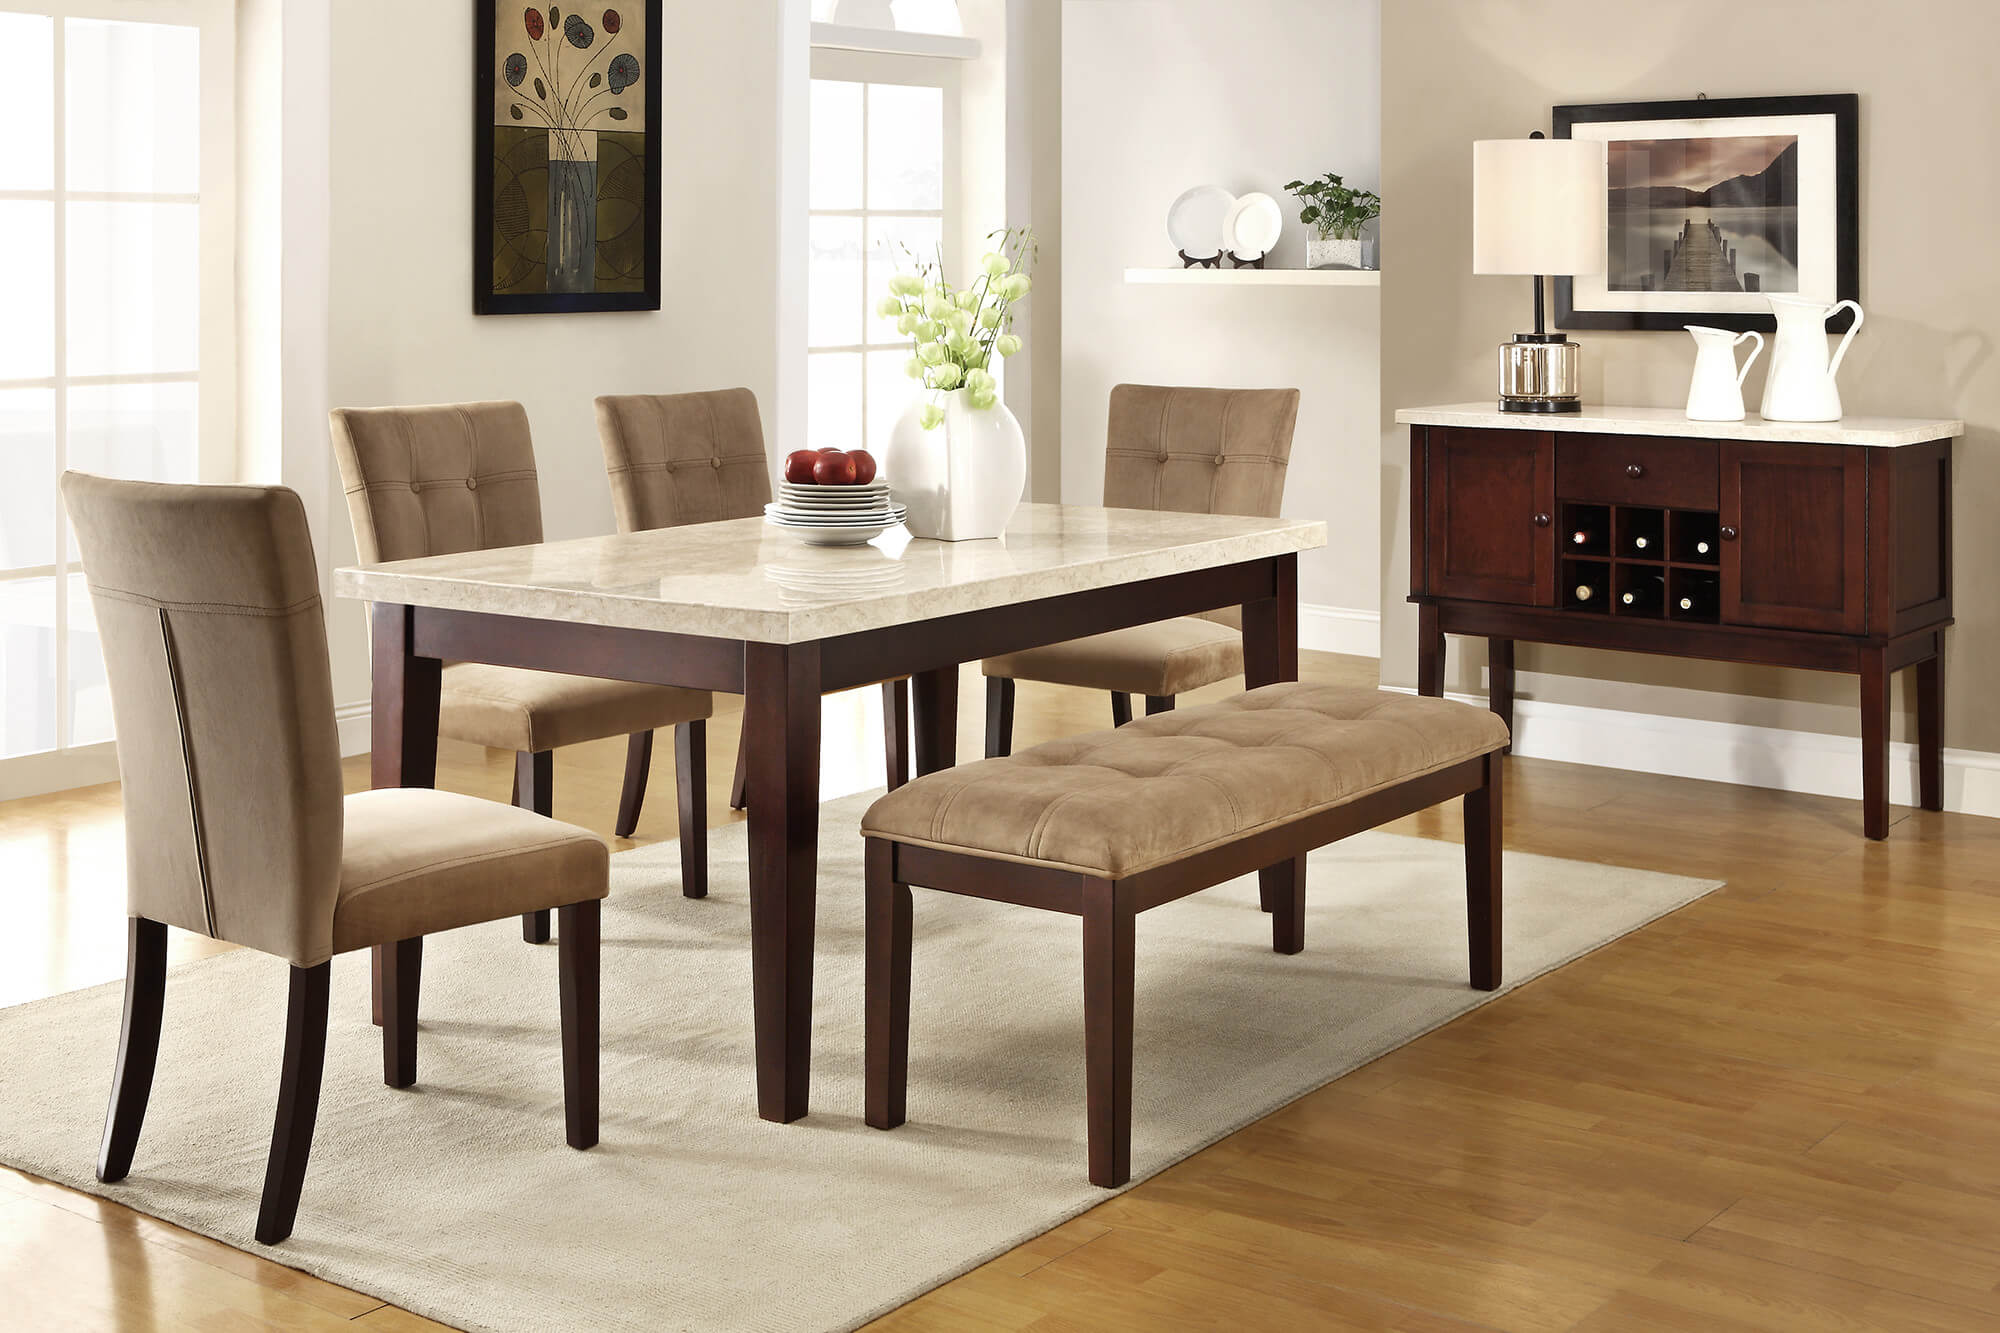 dining room sets 6 chairs pub table and chair 26 big small with bench seating 2019 here s a piece rubberwood set faux marble top tan upholstery for